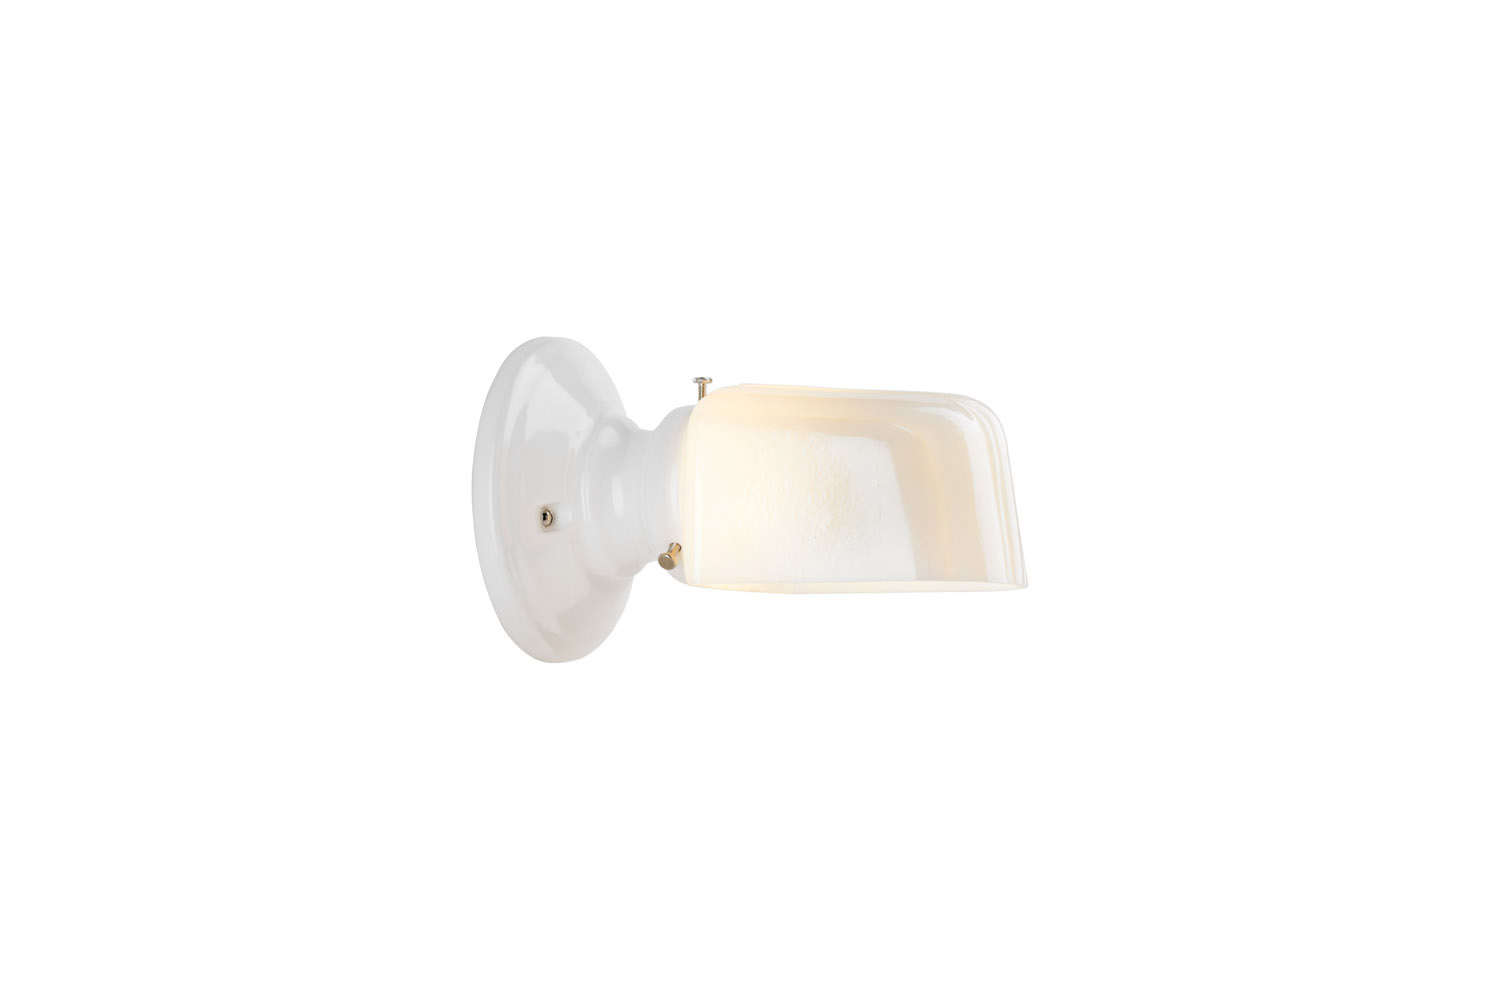 The retro-looking Hannah Sconce in White or Black is $